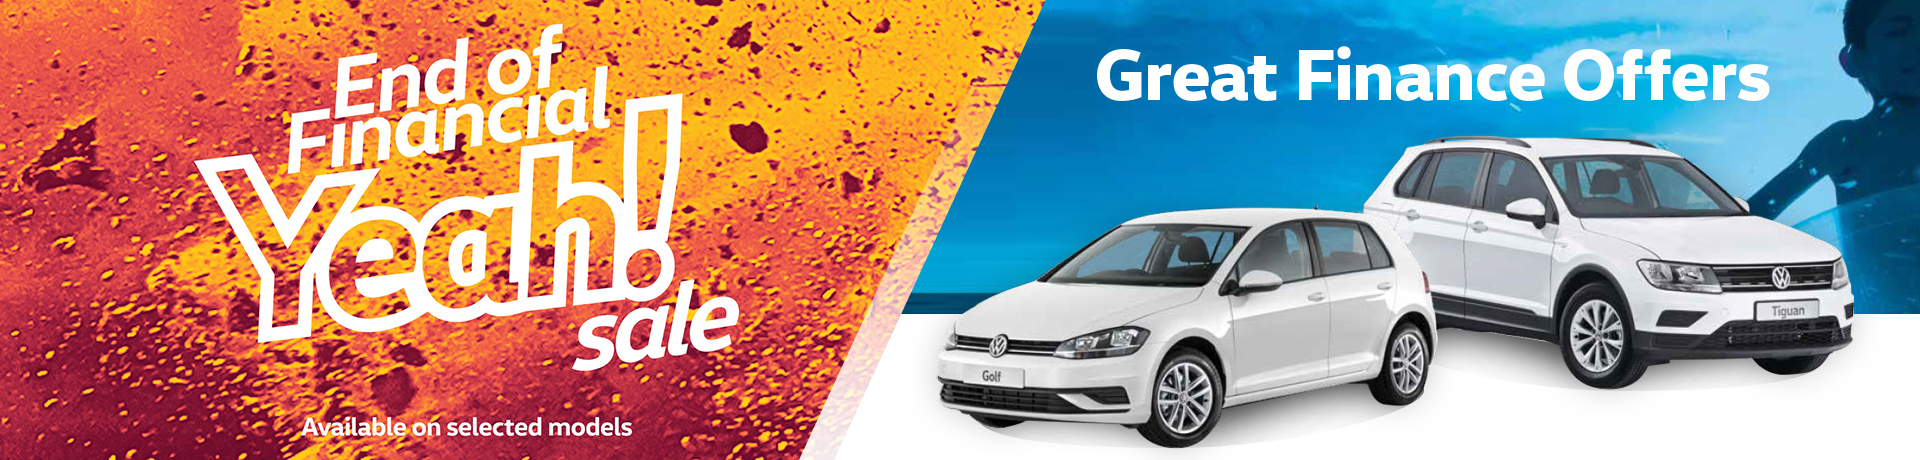 End of Financial Yeah! Sale   Great Finance Offers